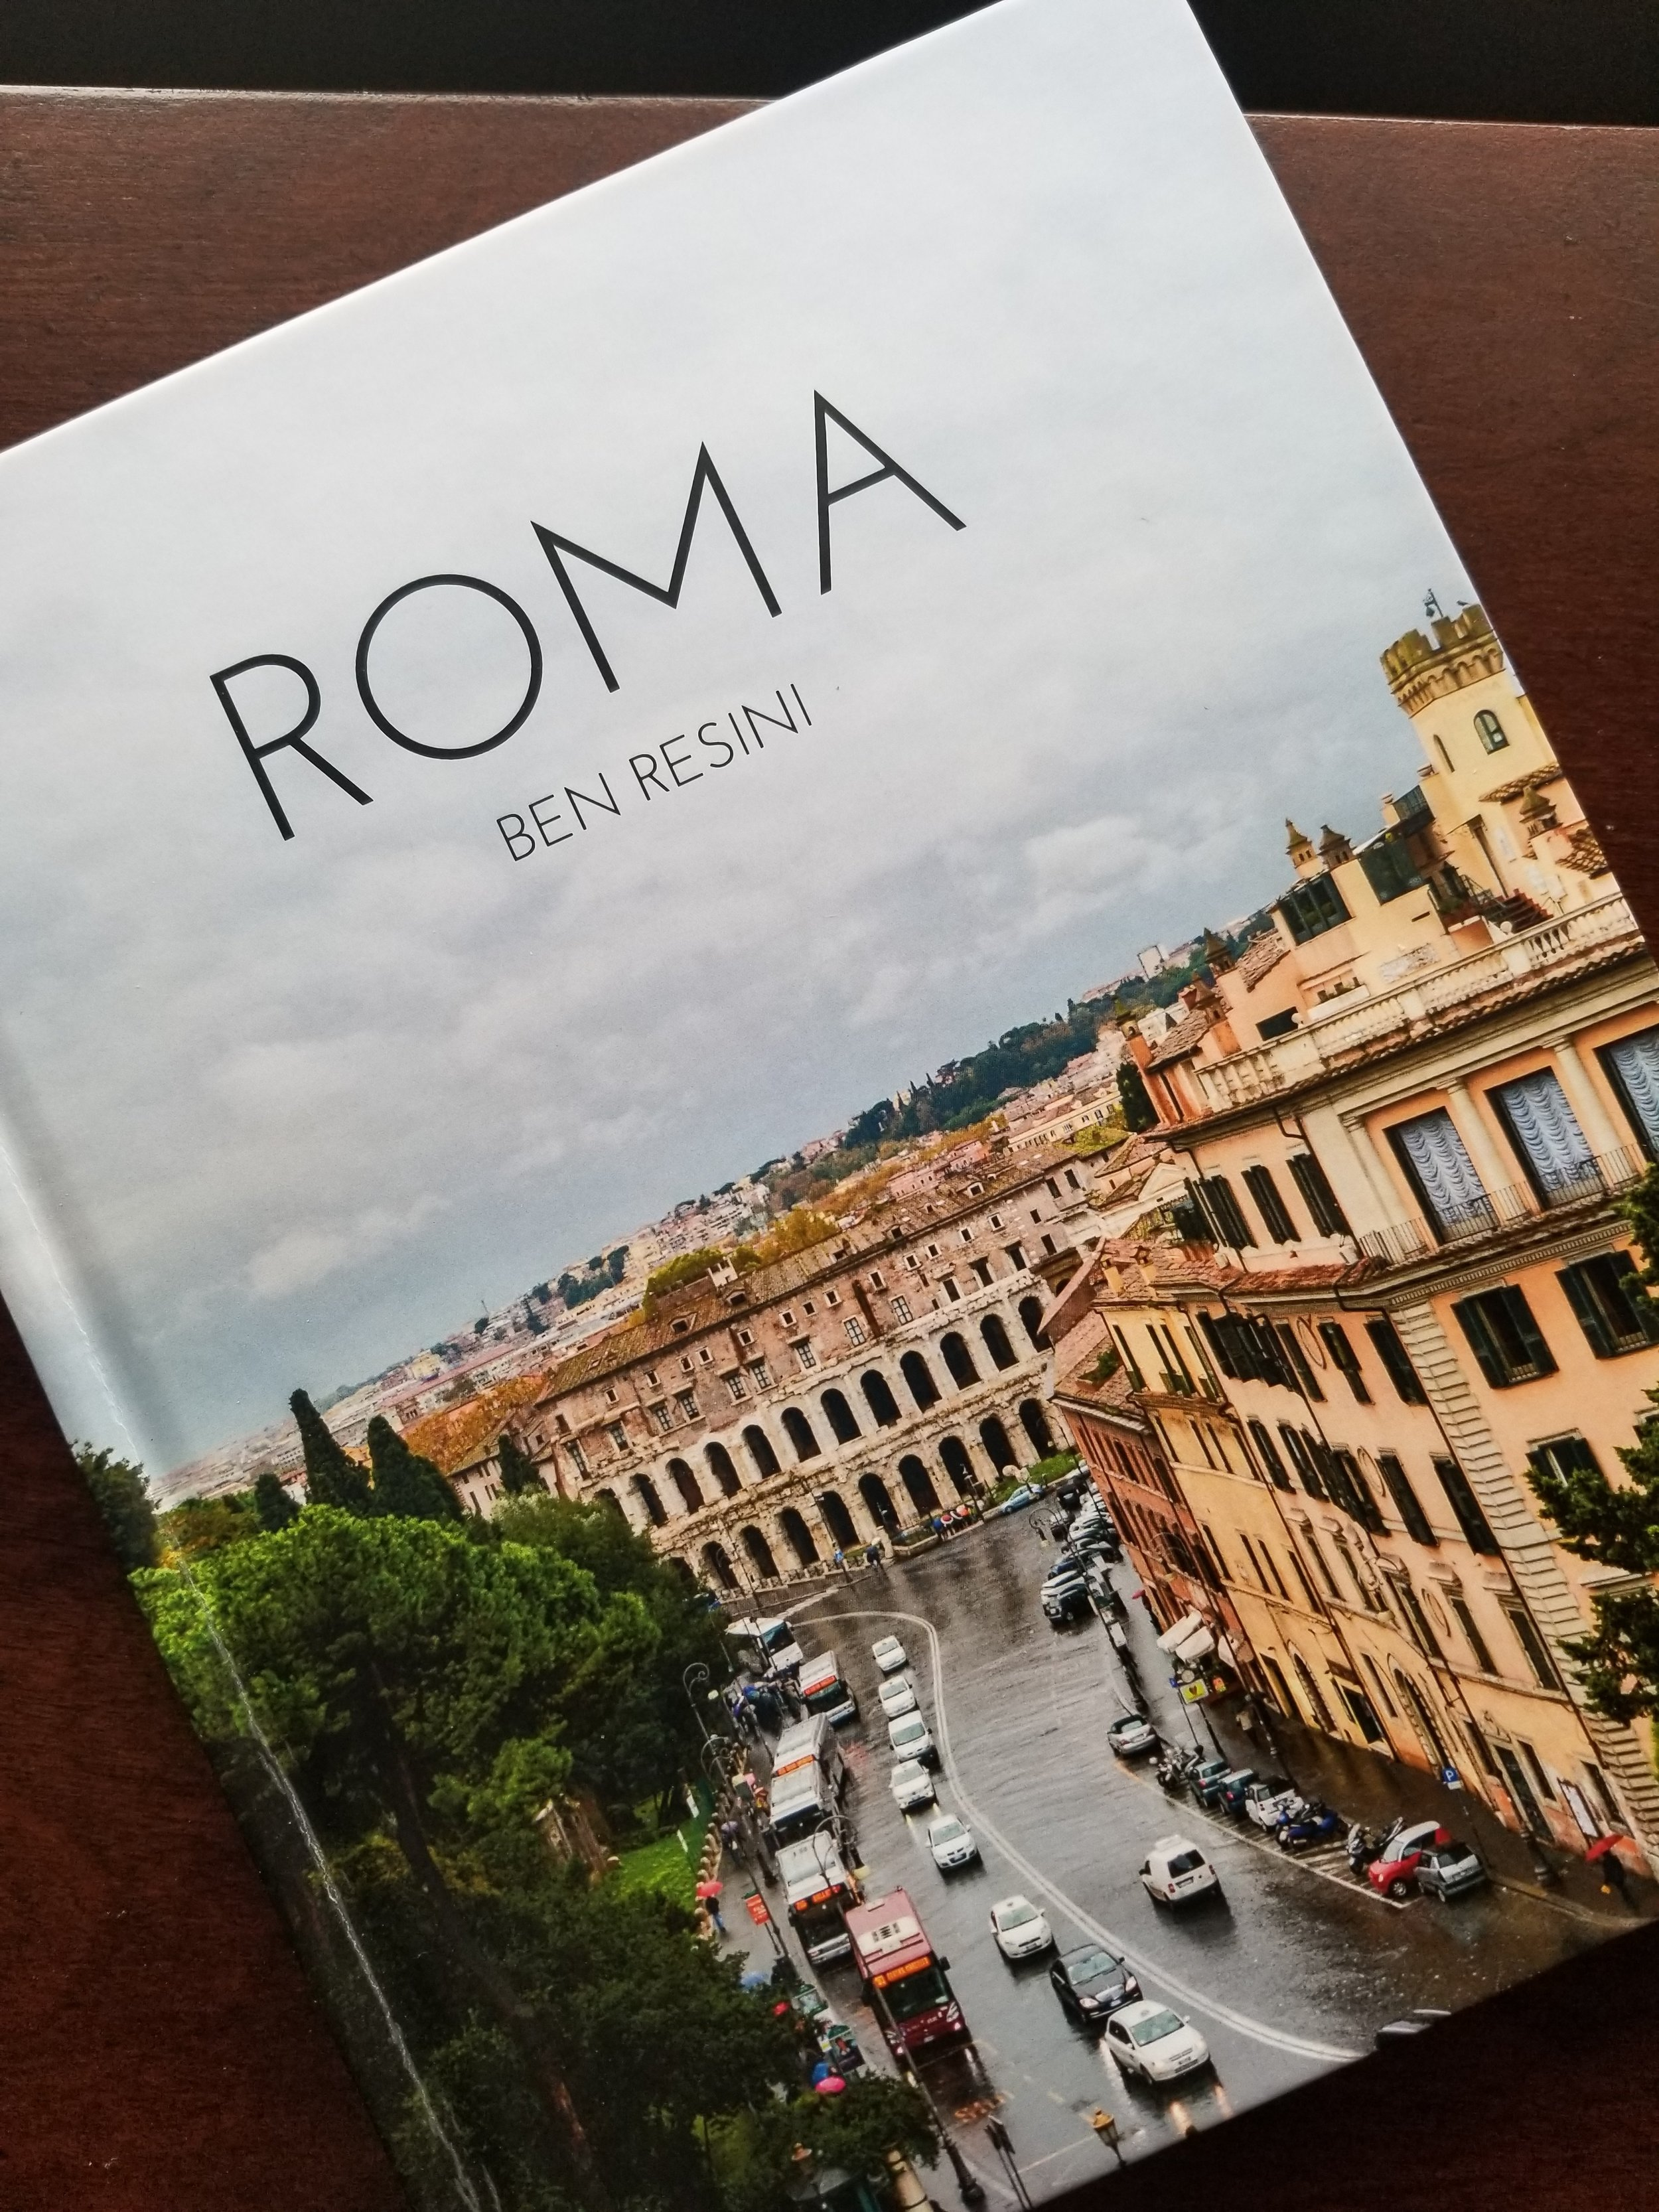 - A visual love letter to the cobble-stoned streets of the eternal city - ROMA is a 240 page hardbound photo book highlighting all aspects of everyday life & street photography in Rome Italy.